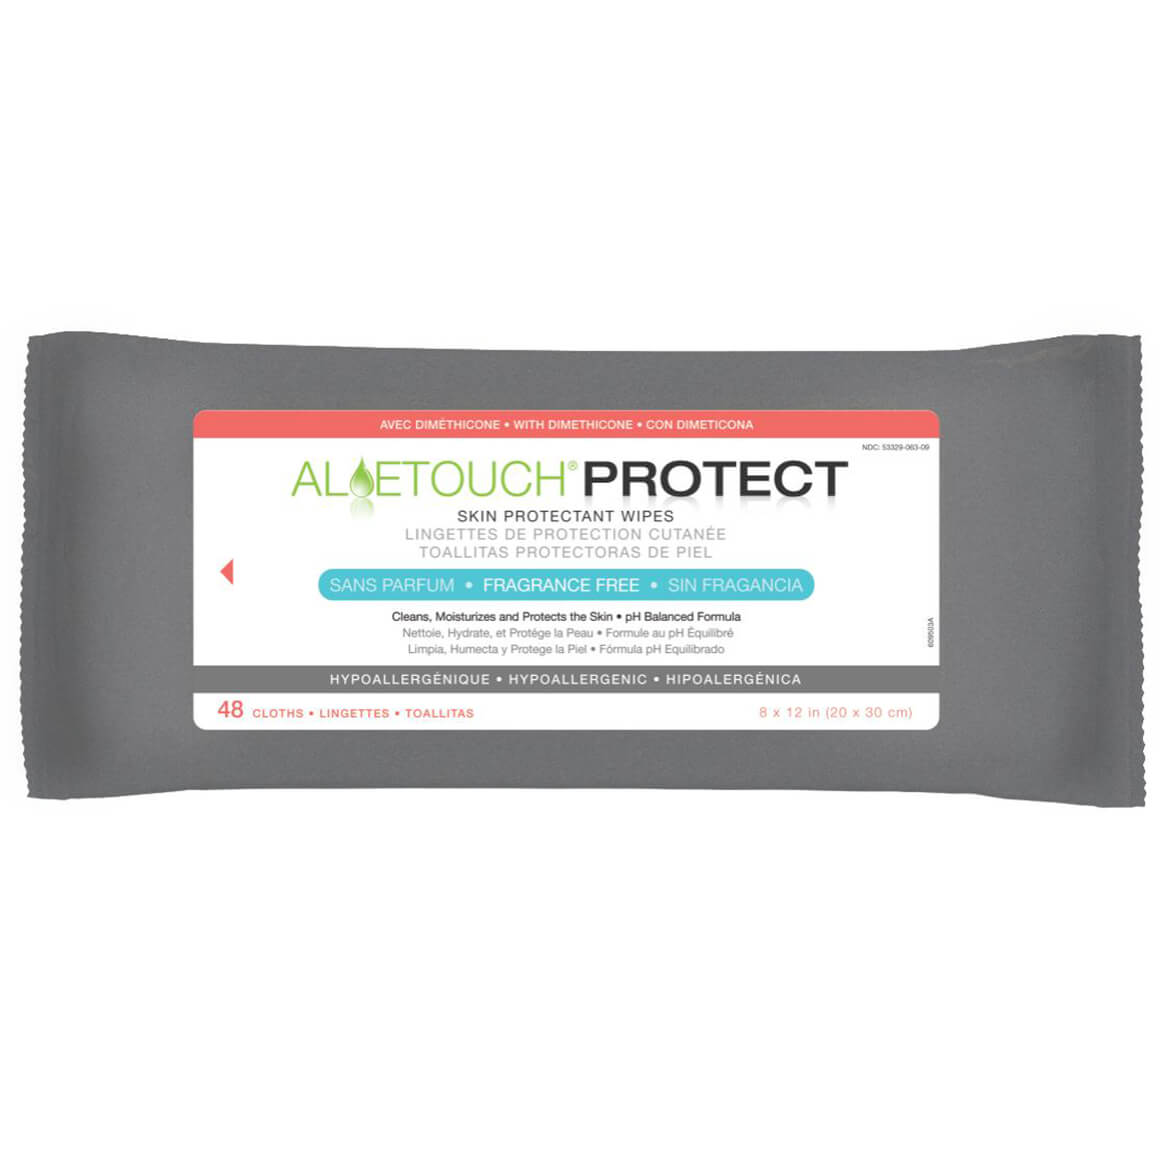 Aloetouch Protect Skin Protectant Wipes, Pack of 48-351478